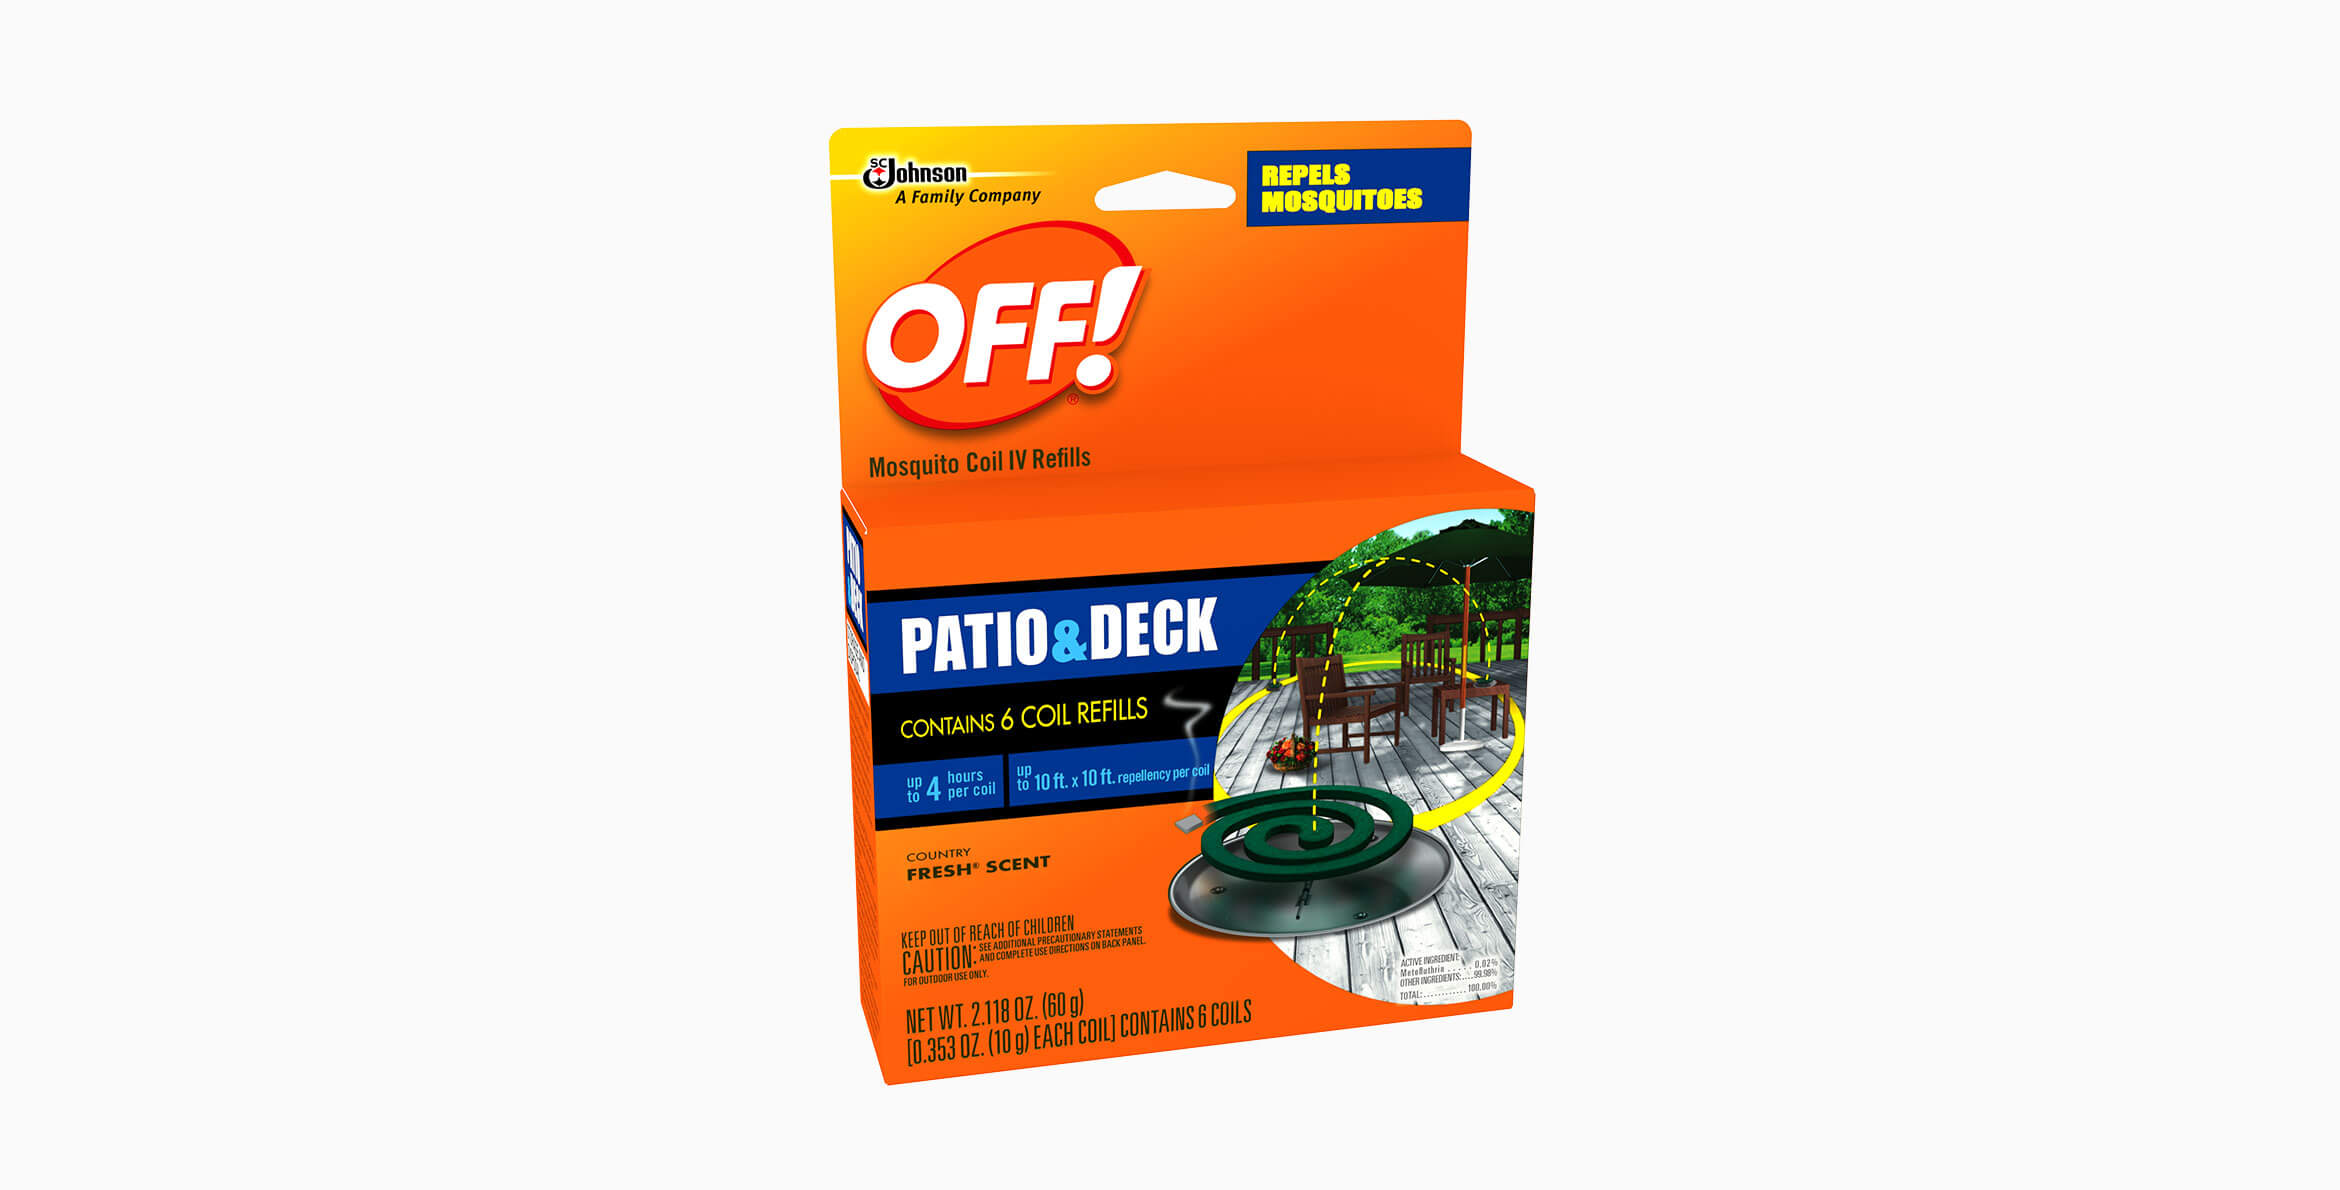 OFF!® Mosquito Coil IV Refills